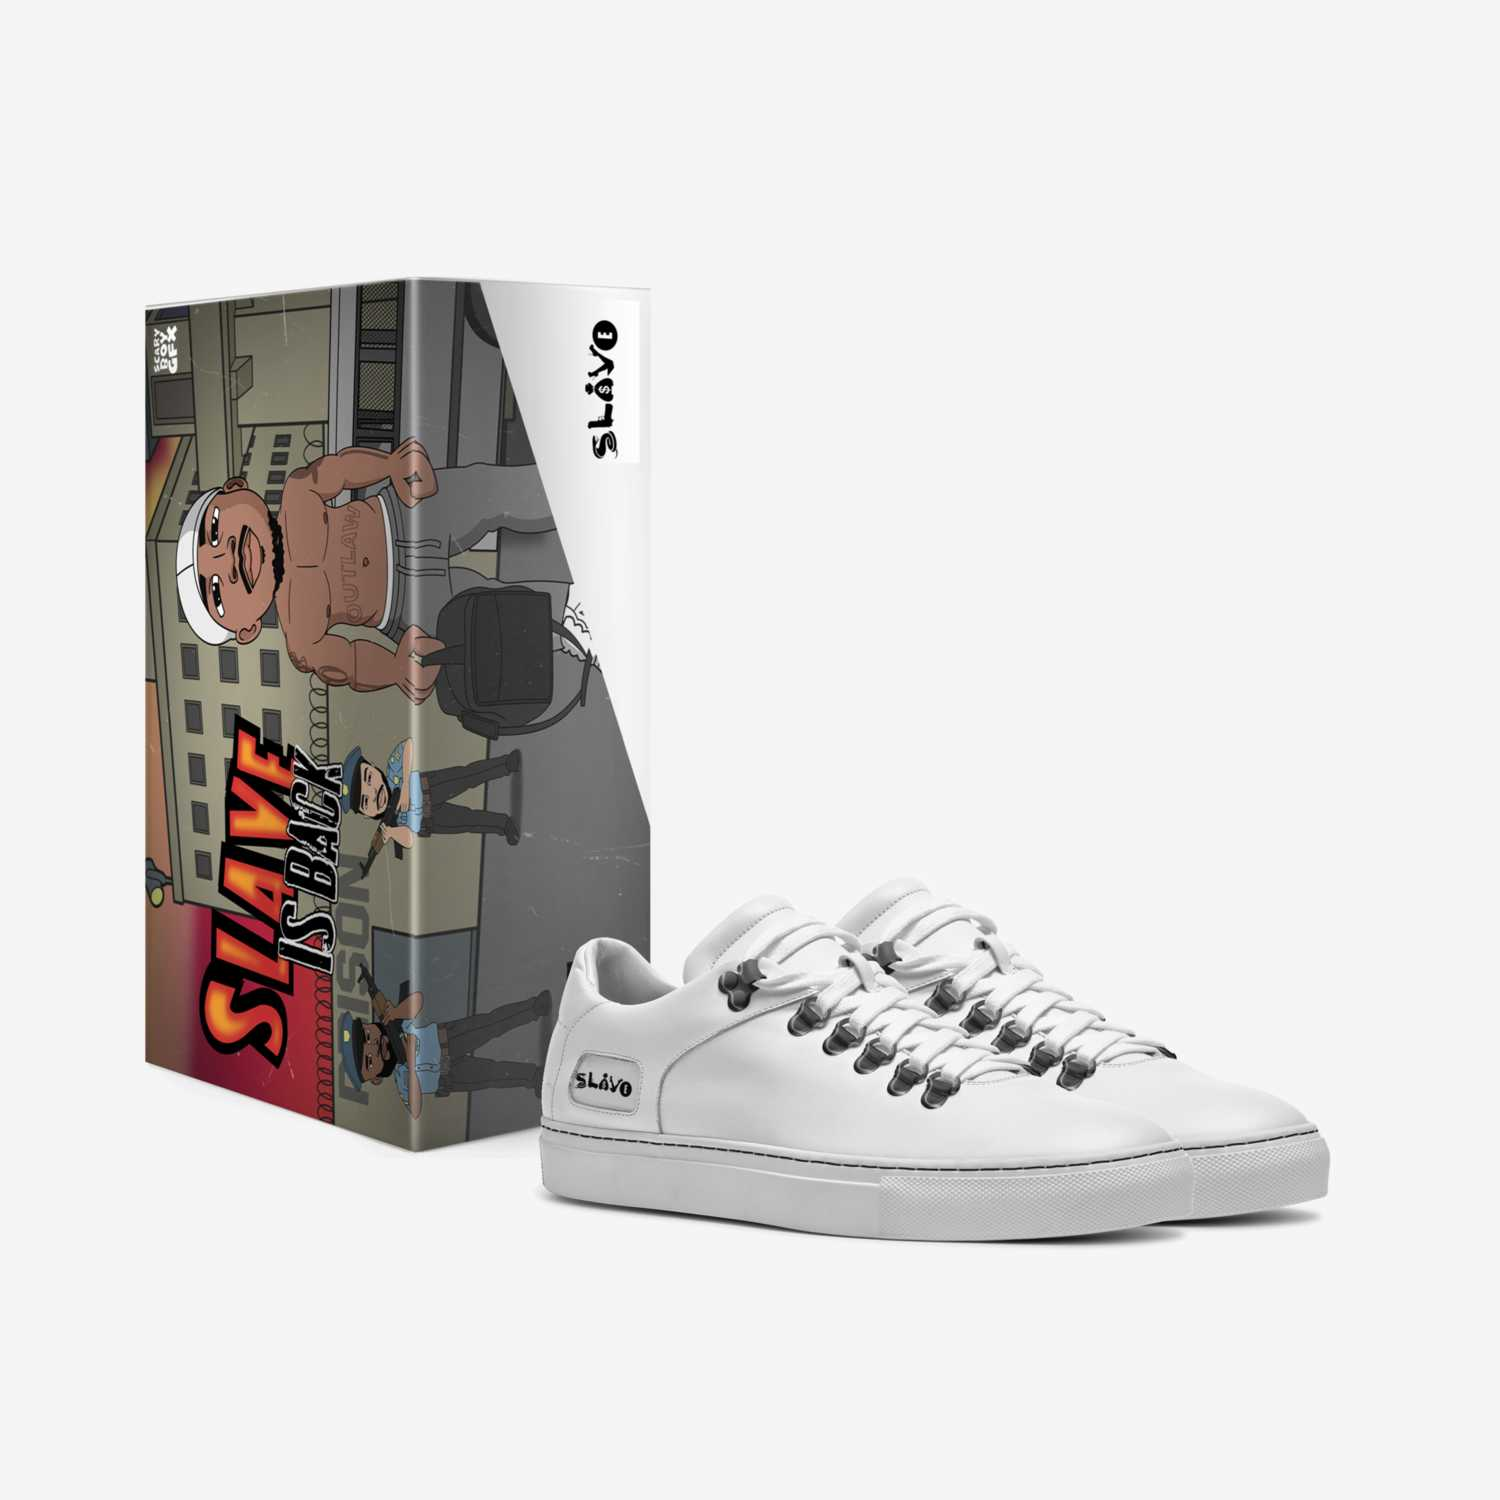 Slave custom made in Italy shoes by Harold English   Box view